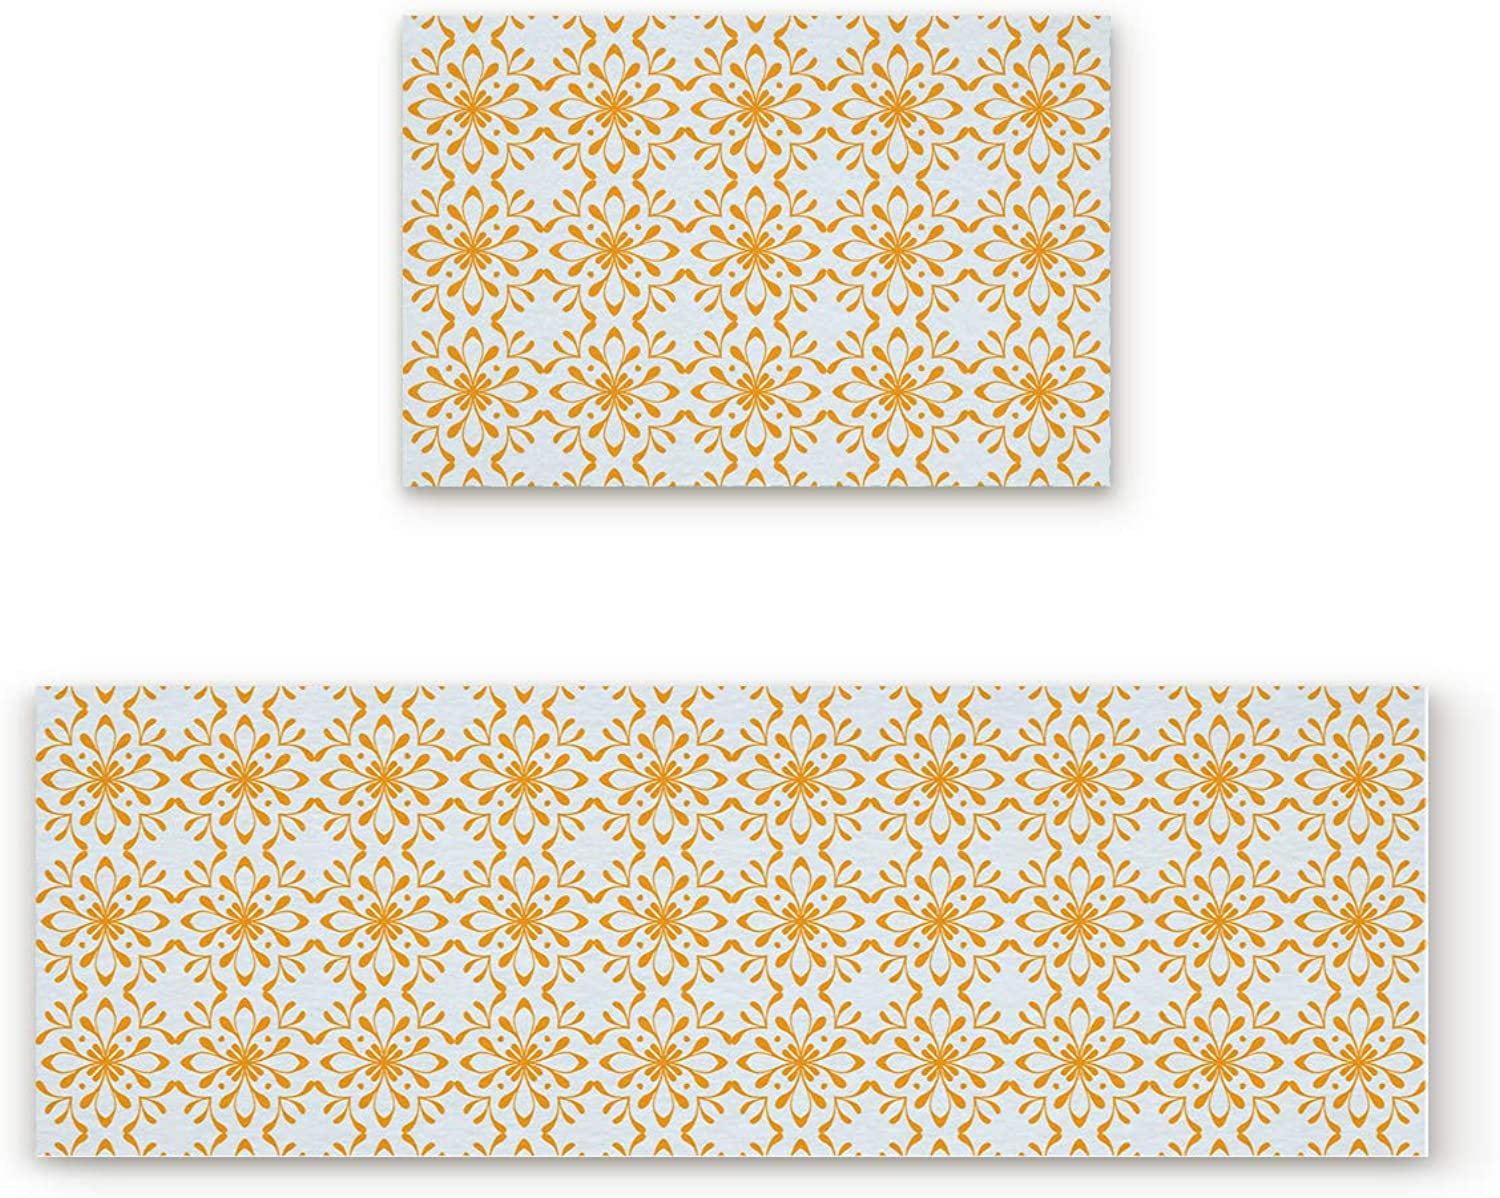 Aomike 2 Piece Non-Slip Kitchen Mat Rubber Backing Doormat Classic Floral Pattern Runner Rug Set Hallway Living Room Balcony Bathroom Carpet Sets (23.6  x 35.4 +23.6  x 70.9 )